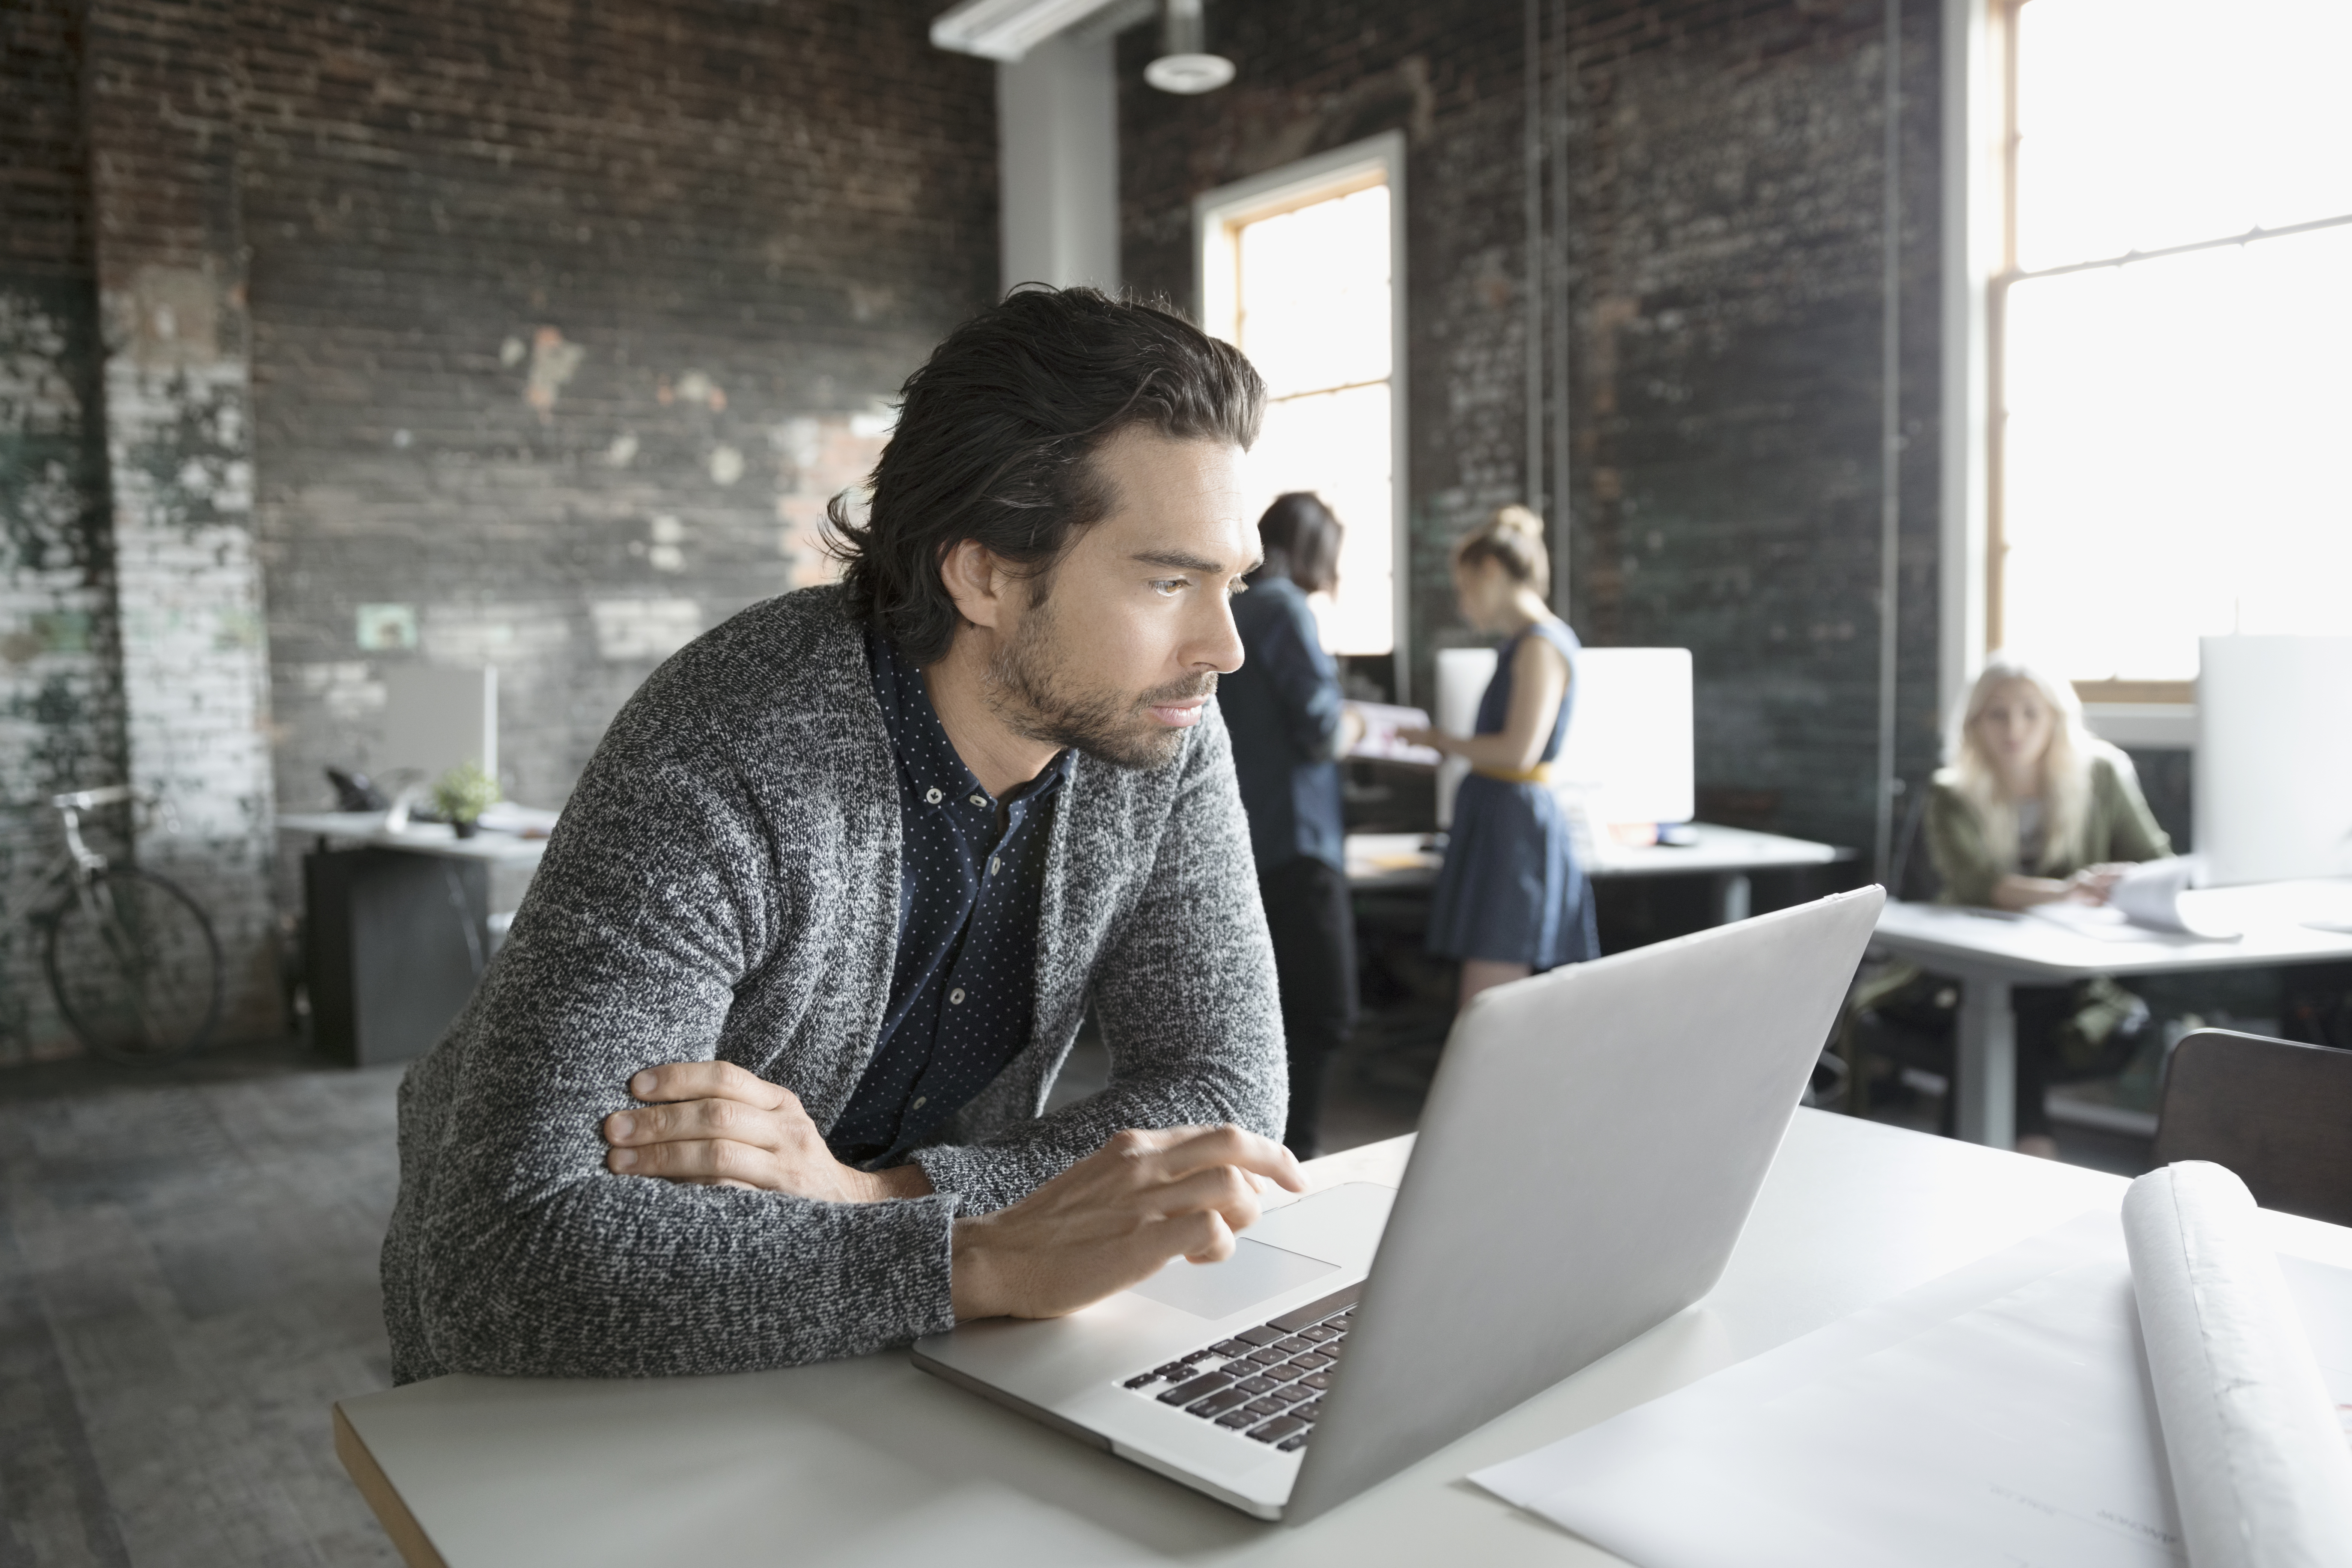 Man wearing a grey sweater working at a laptop in an office.